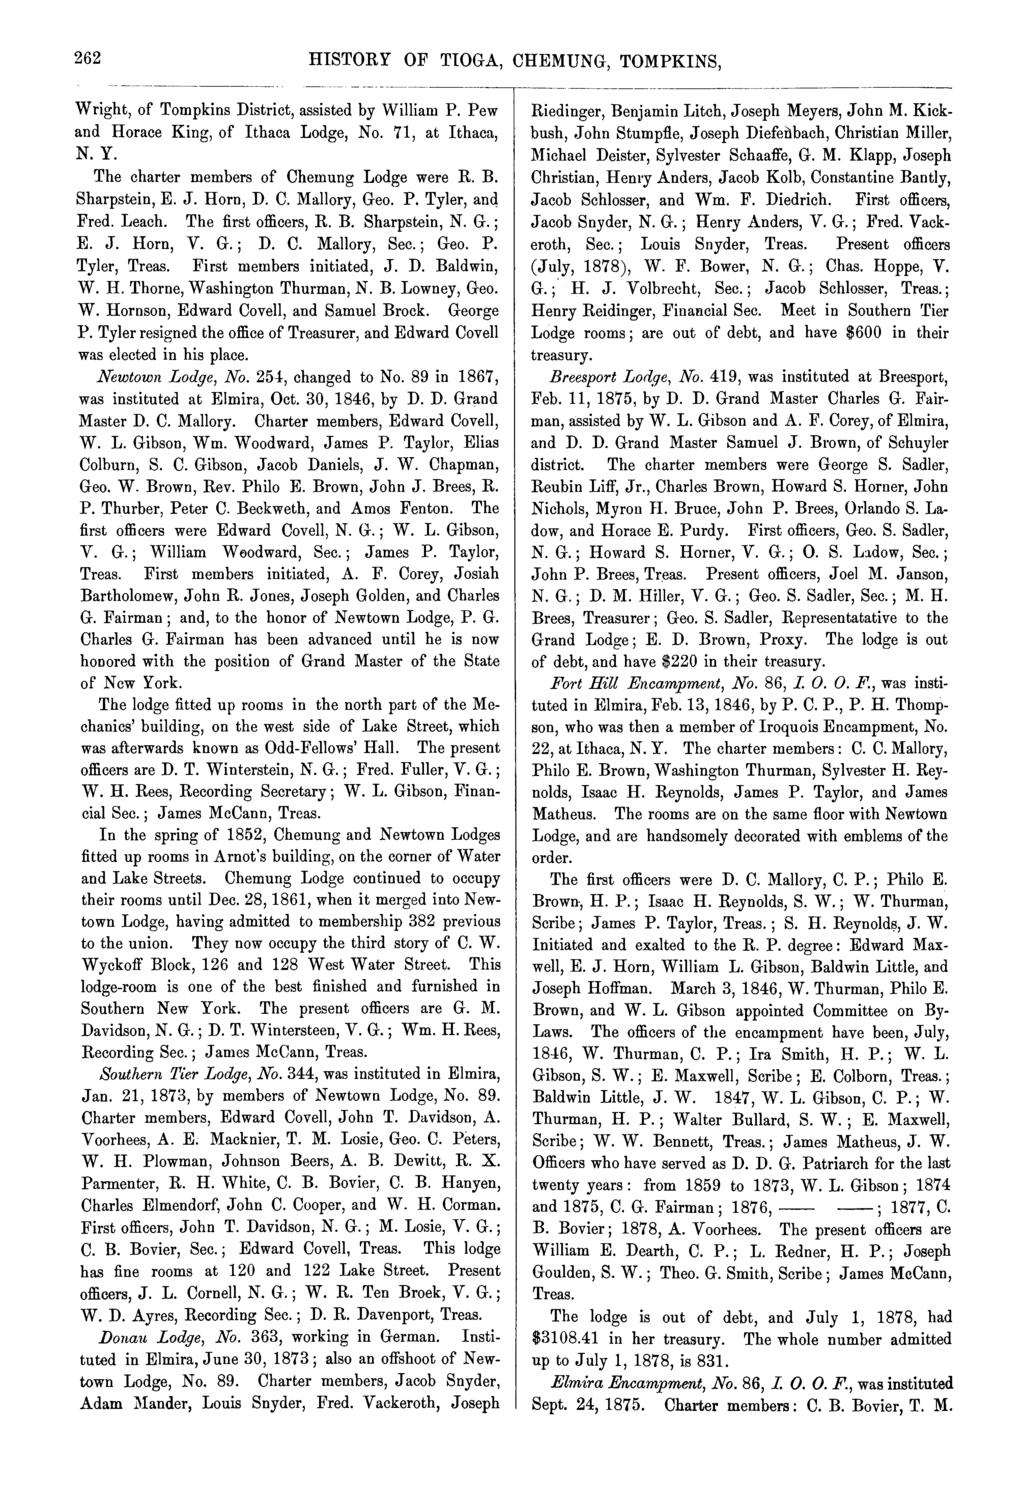 262 HISTORY OF TIOGA, CHEMUNG, TOMPKINS, Wright, of Tompkins District, assisted by William P. Pew Horace King, of Ithaca Lodge, No. 71, at Ithaca, N. Y. The charter members of Chemung Lodge were R. B.